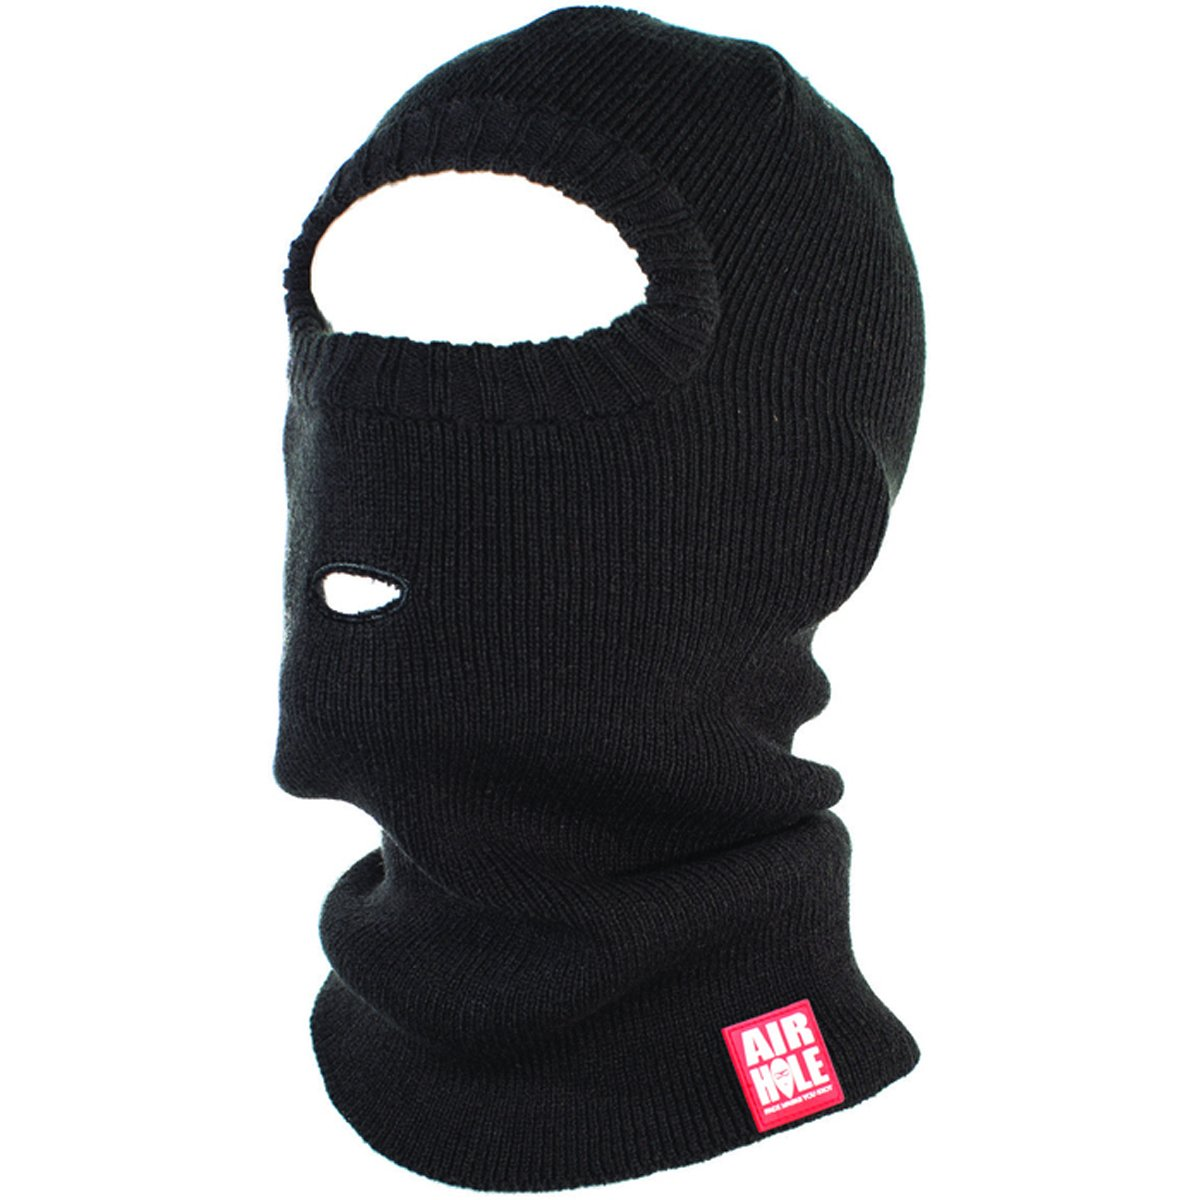 Airhole Adult Burgler Pullover Knit Balaclava Face Mask, Black, One Size